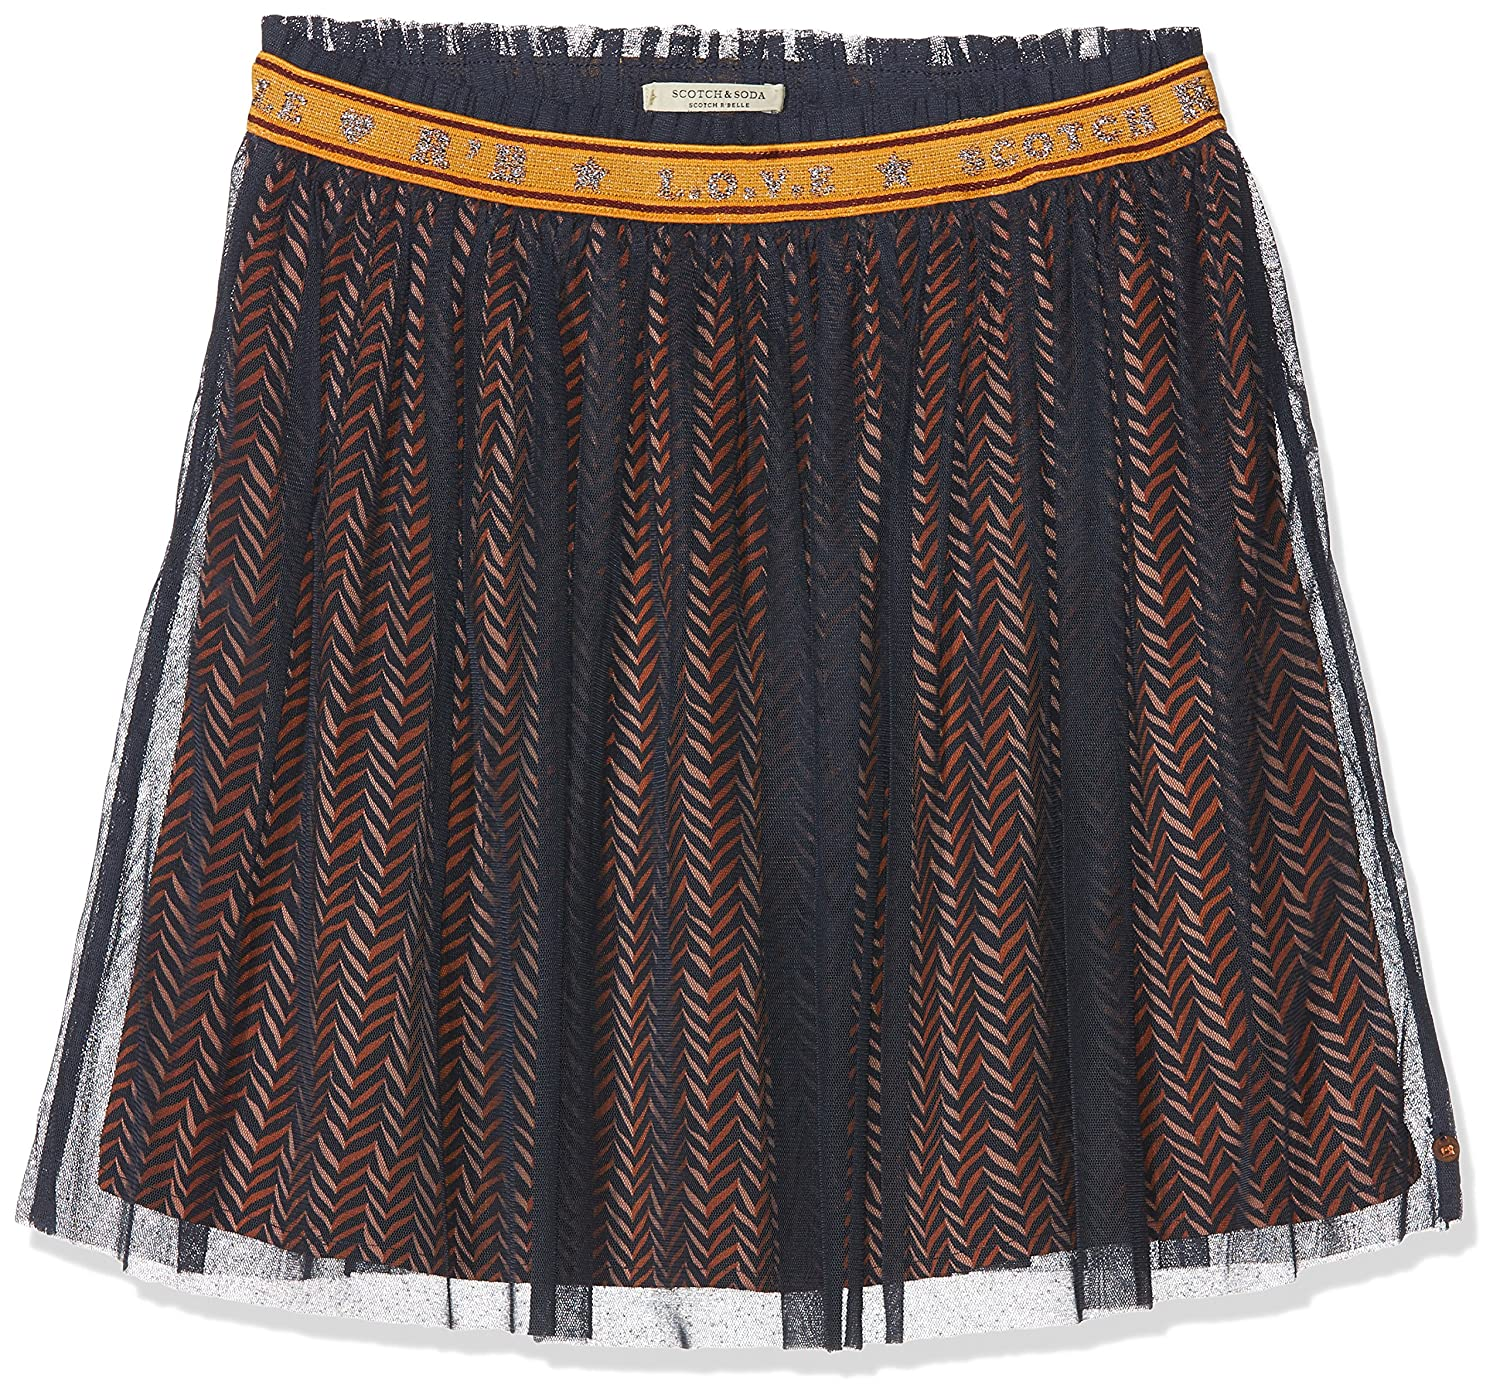 Scotch & Soda Elasticated Tulle Skirt with Allover Printed Woven Lining, Gonna Bambina Scotch & Soda RŽBelle 147106